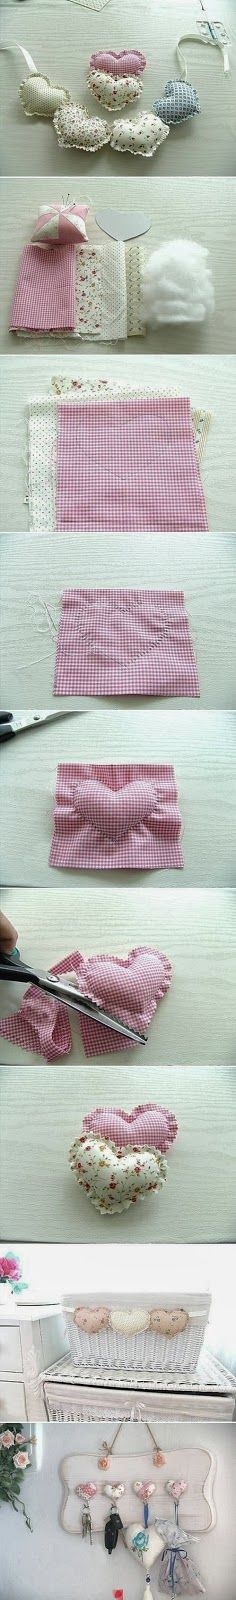 DIY Craft Idea What stitch do you think they used?